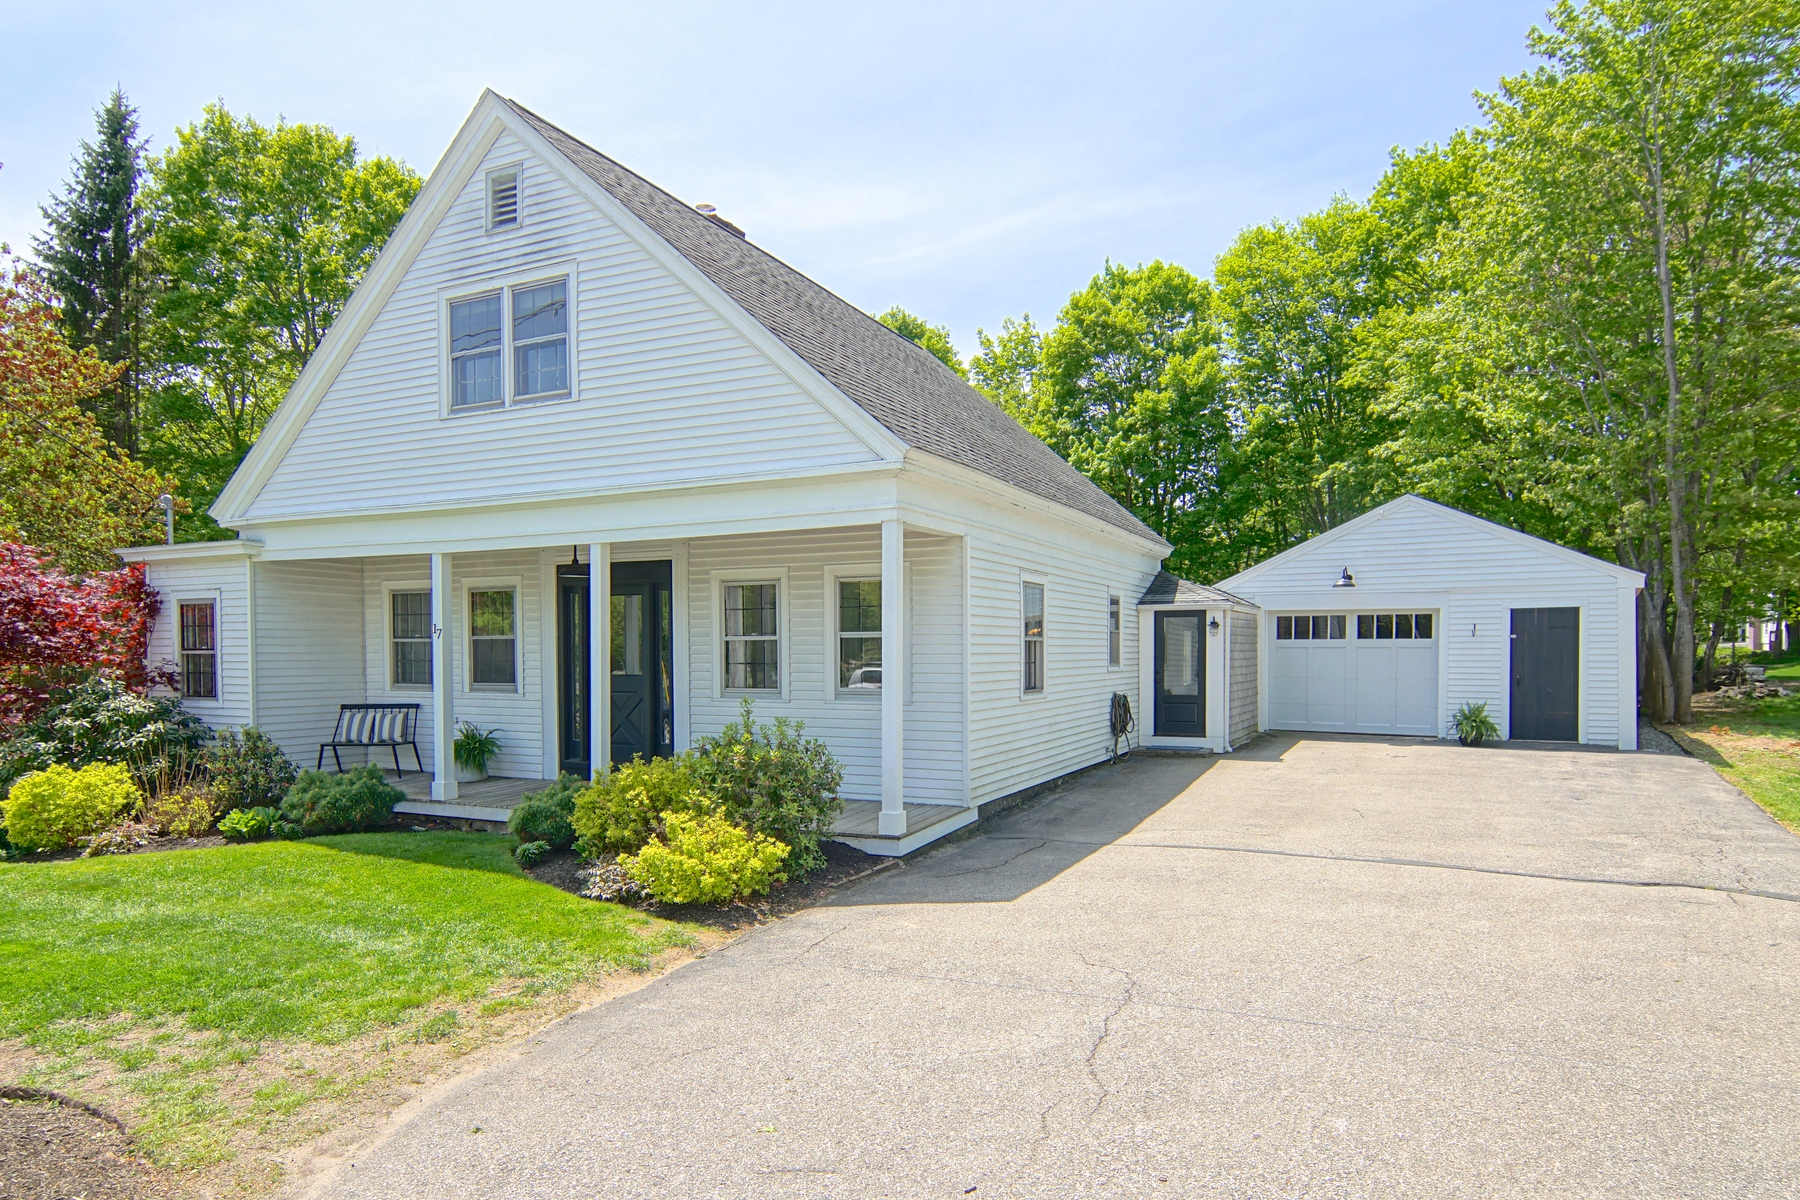 Single Family Home for Sale at Classic Cape with Generous Backyard in the Heart of Rye 17 Central Road Rye, New Hampshire 03870 United States